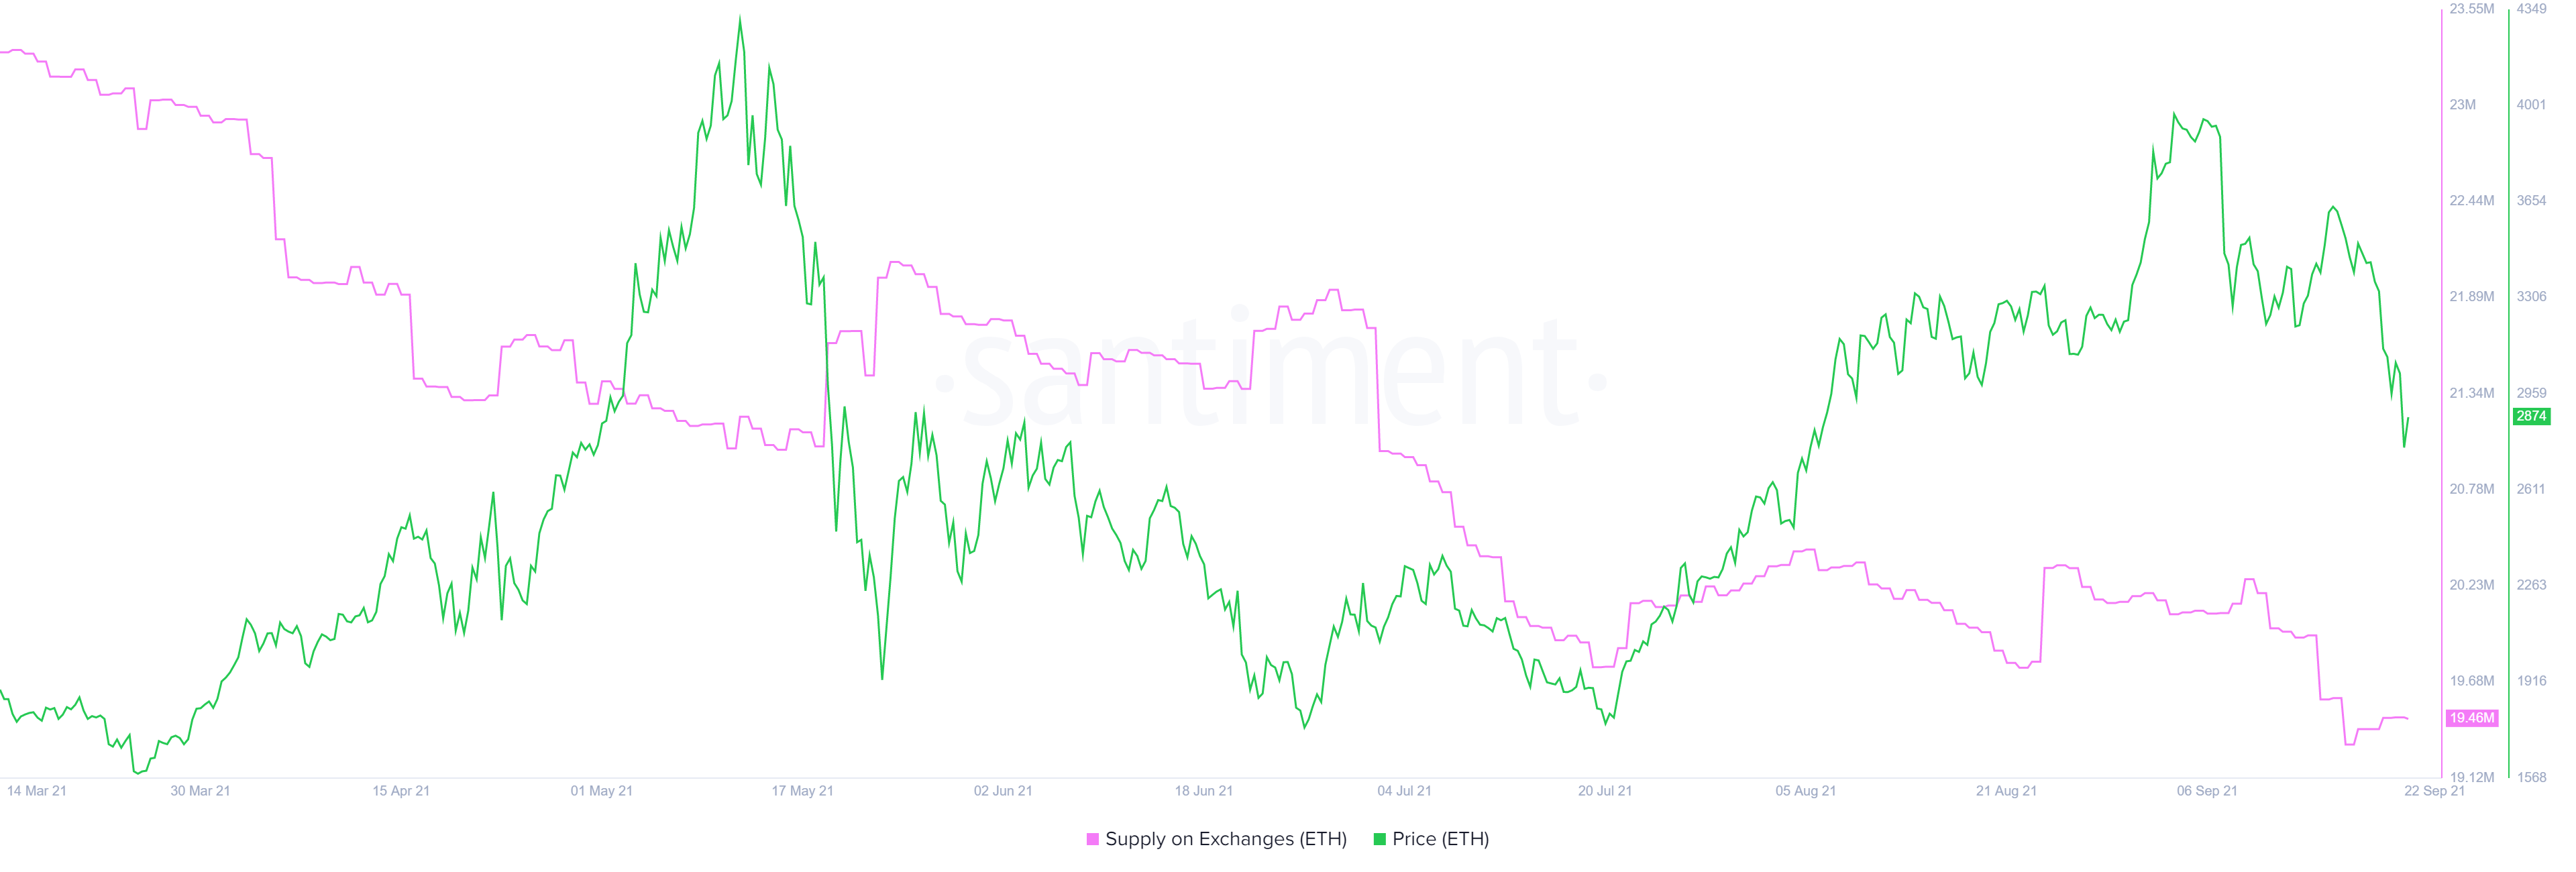 ETH supply on exchanges chart